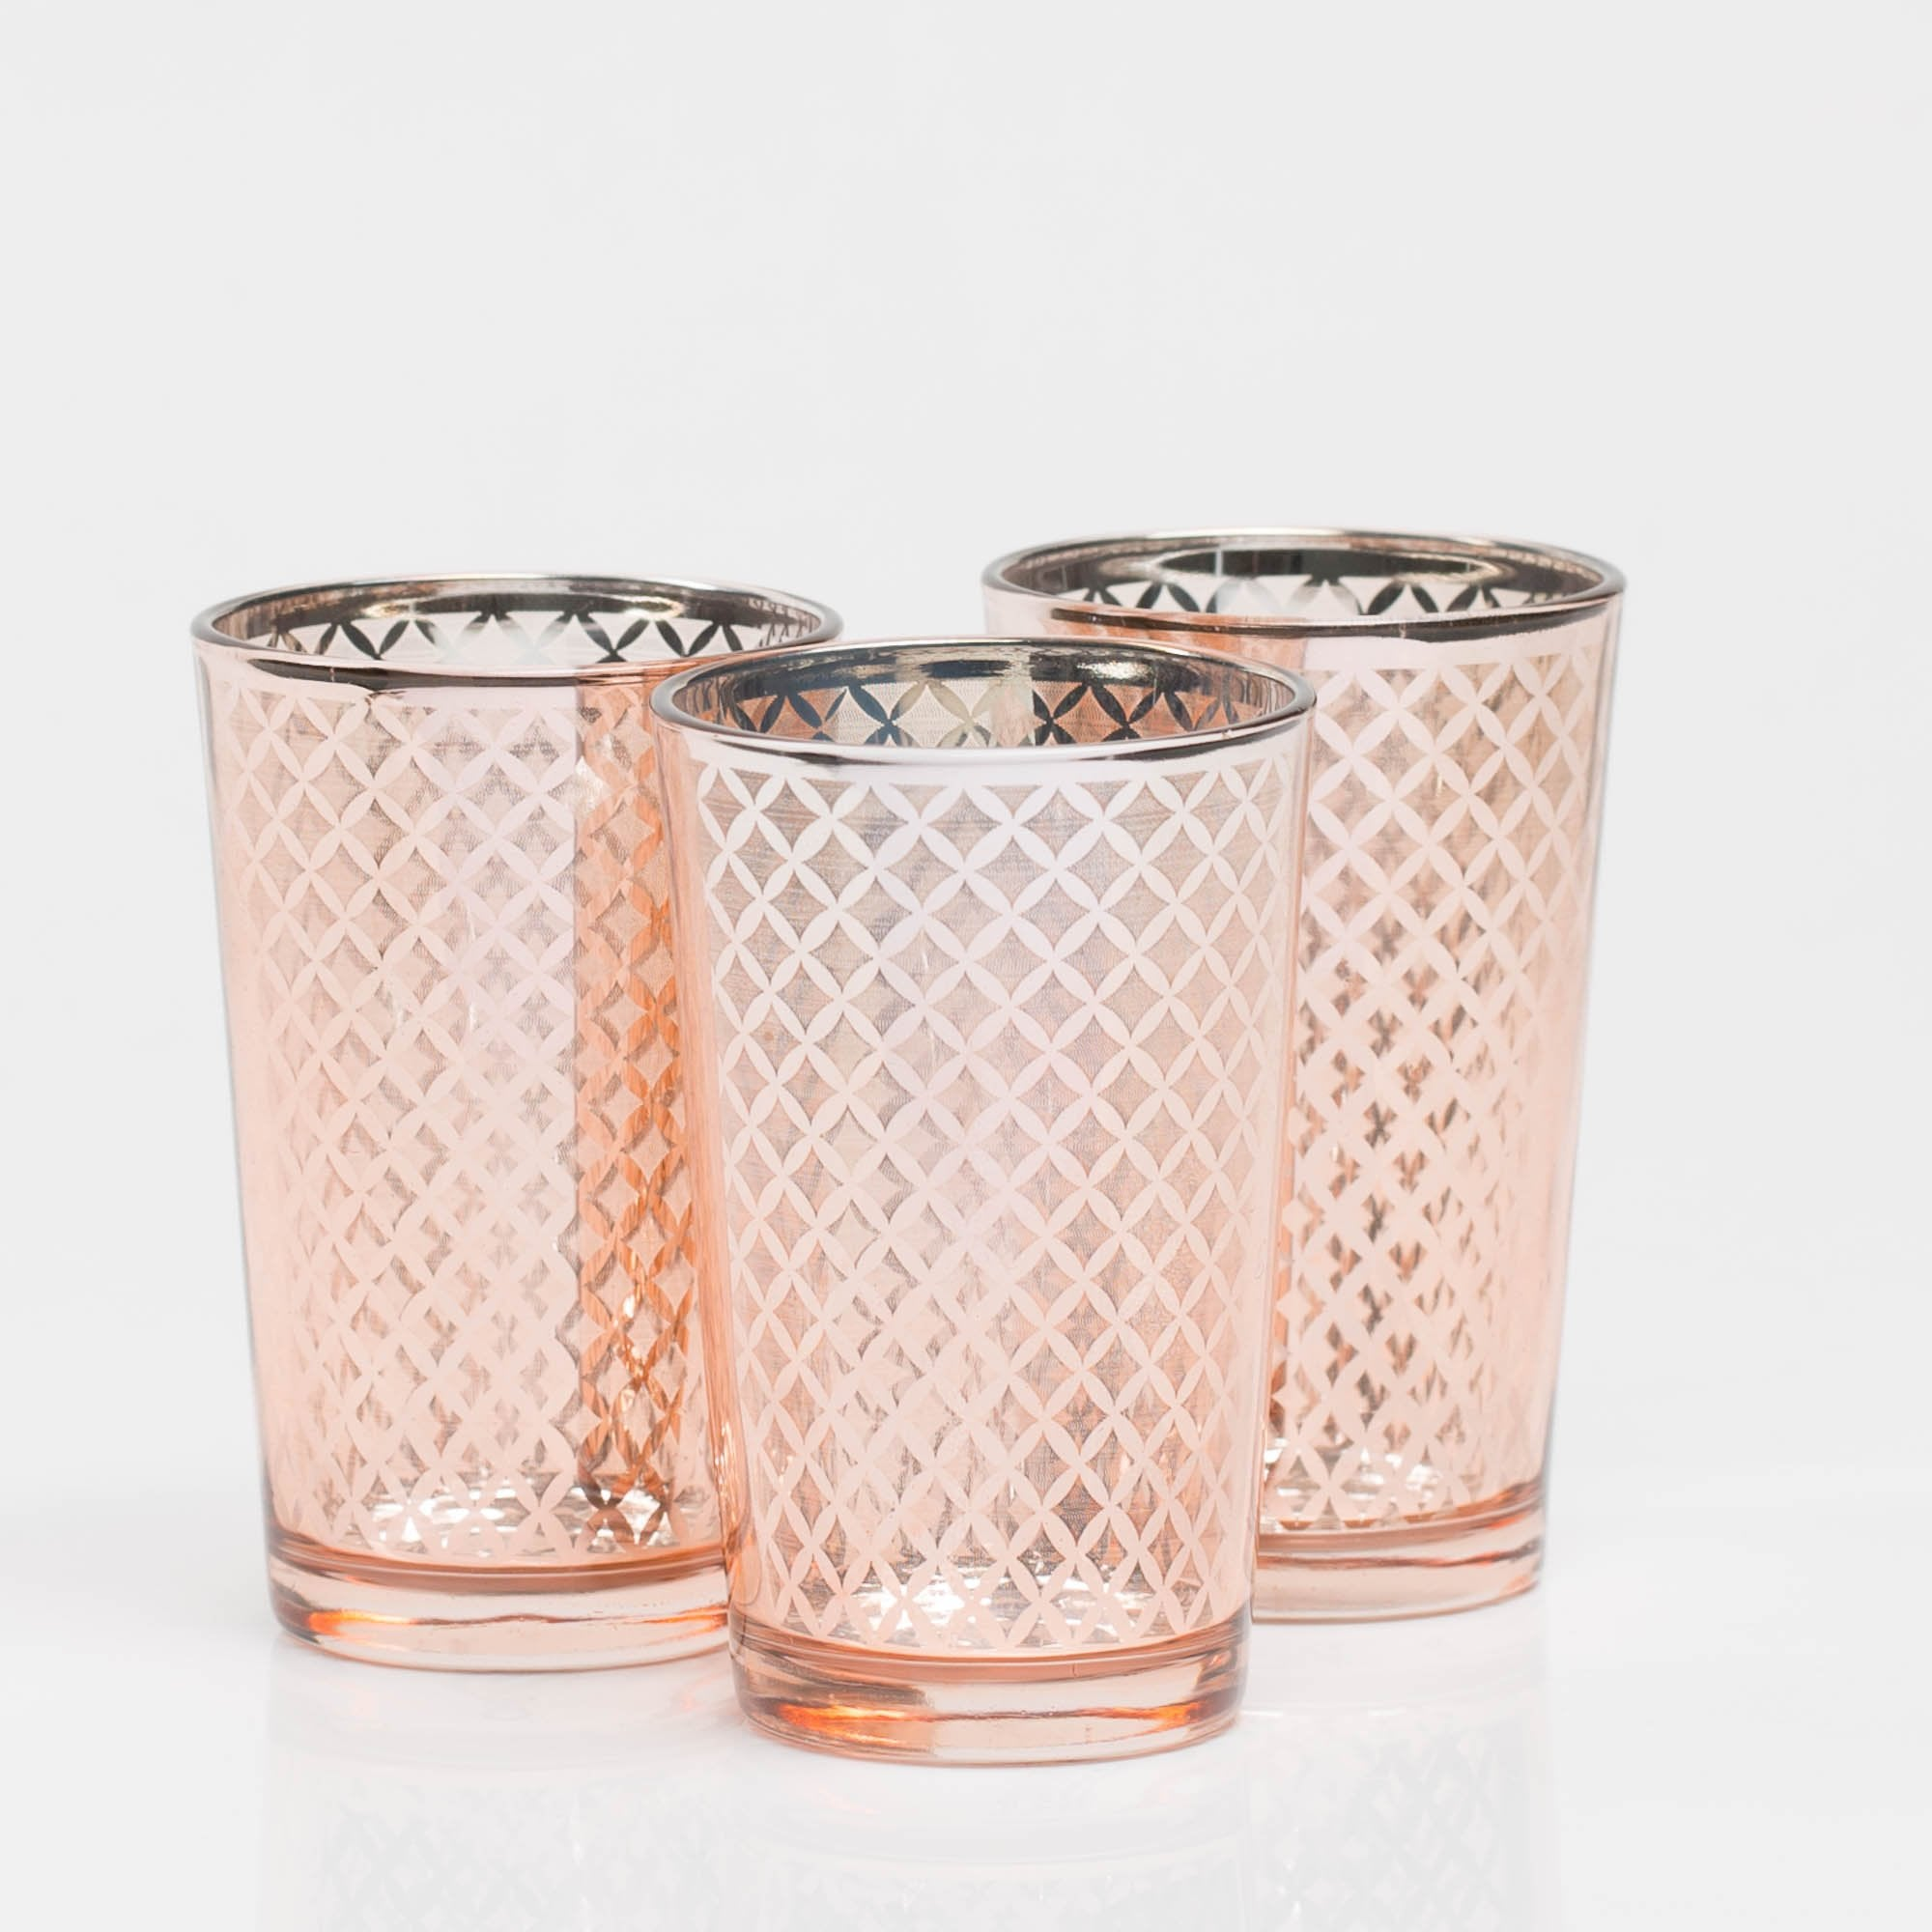 Richland Rose Gold Lattice Glass Holder - Large Set of 48